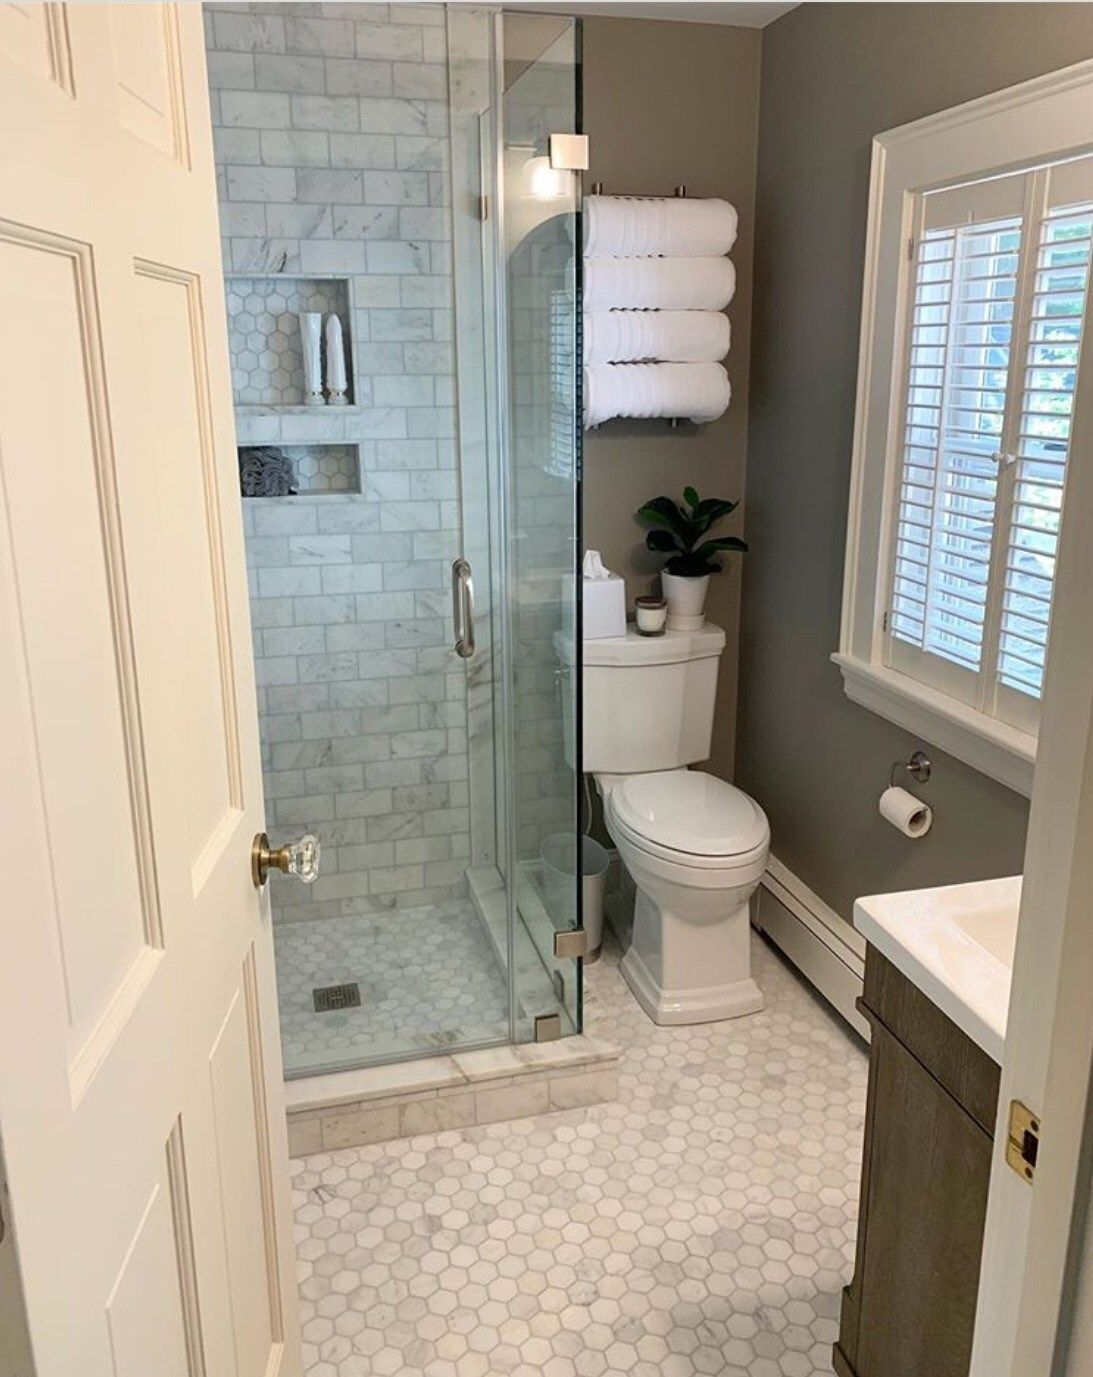 14 stunning design ideas for small bathrooms small on stunning small bathroom design ideas id=51948